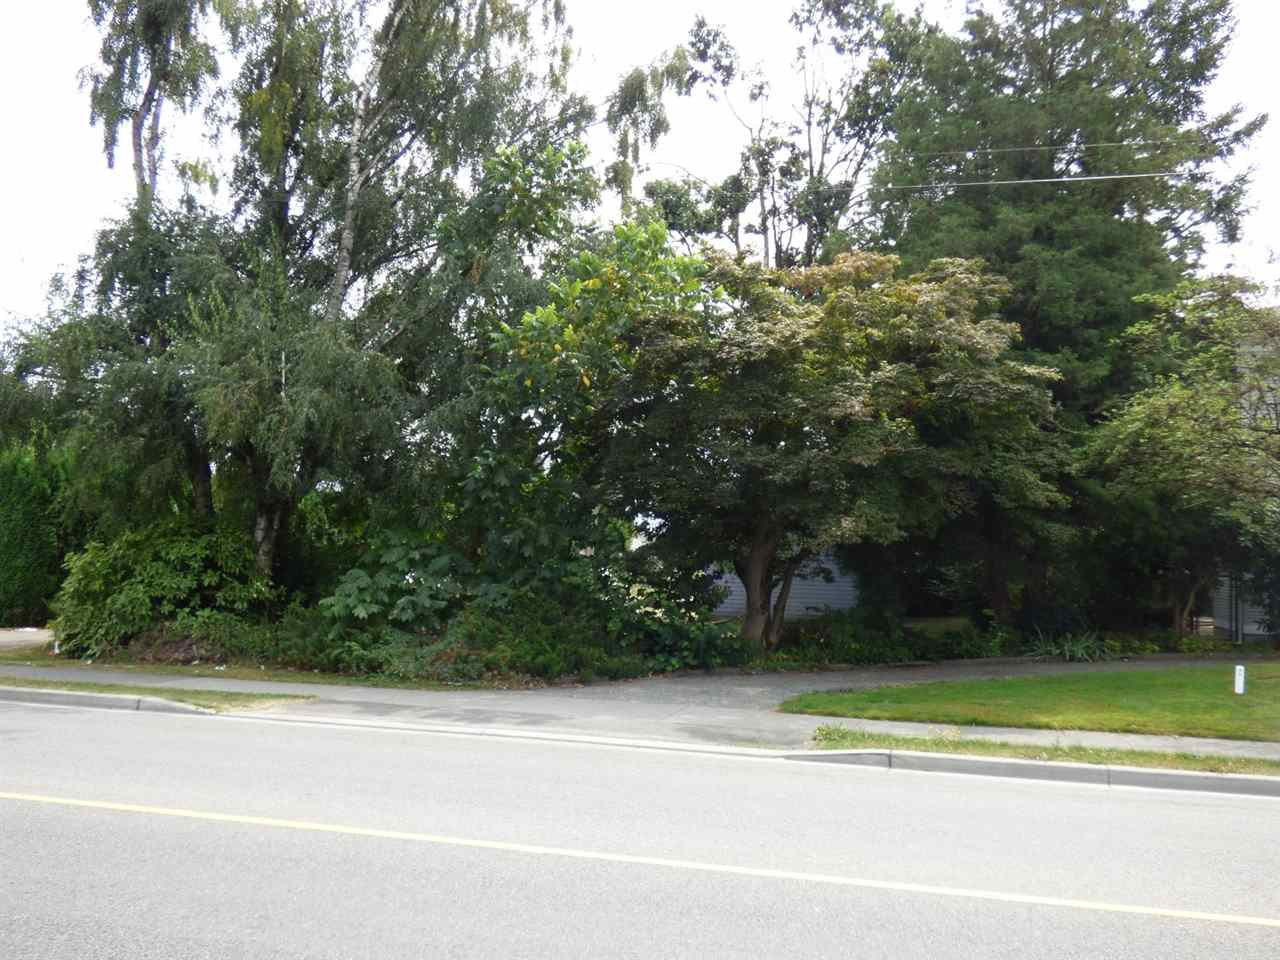 Main Photo: 46074 FIRST Avenue in Chilliwack: Chilliwack E Young-Yale Land for sale : MLS®# R2423547